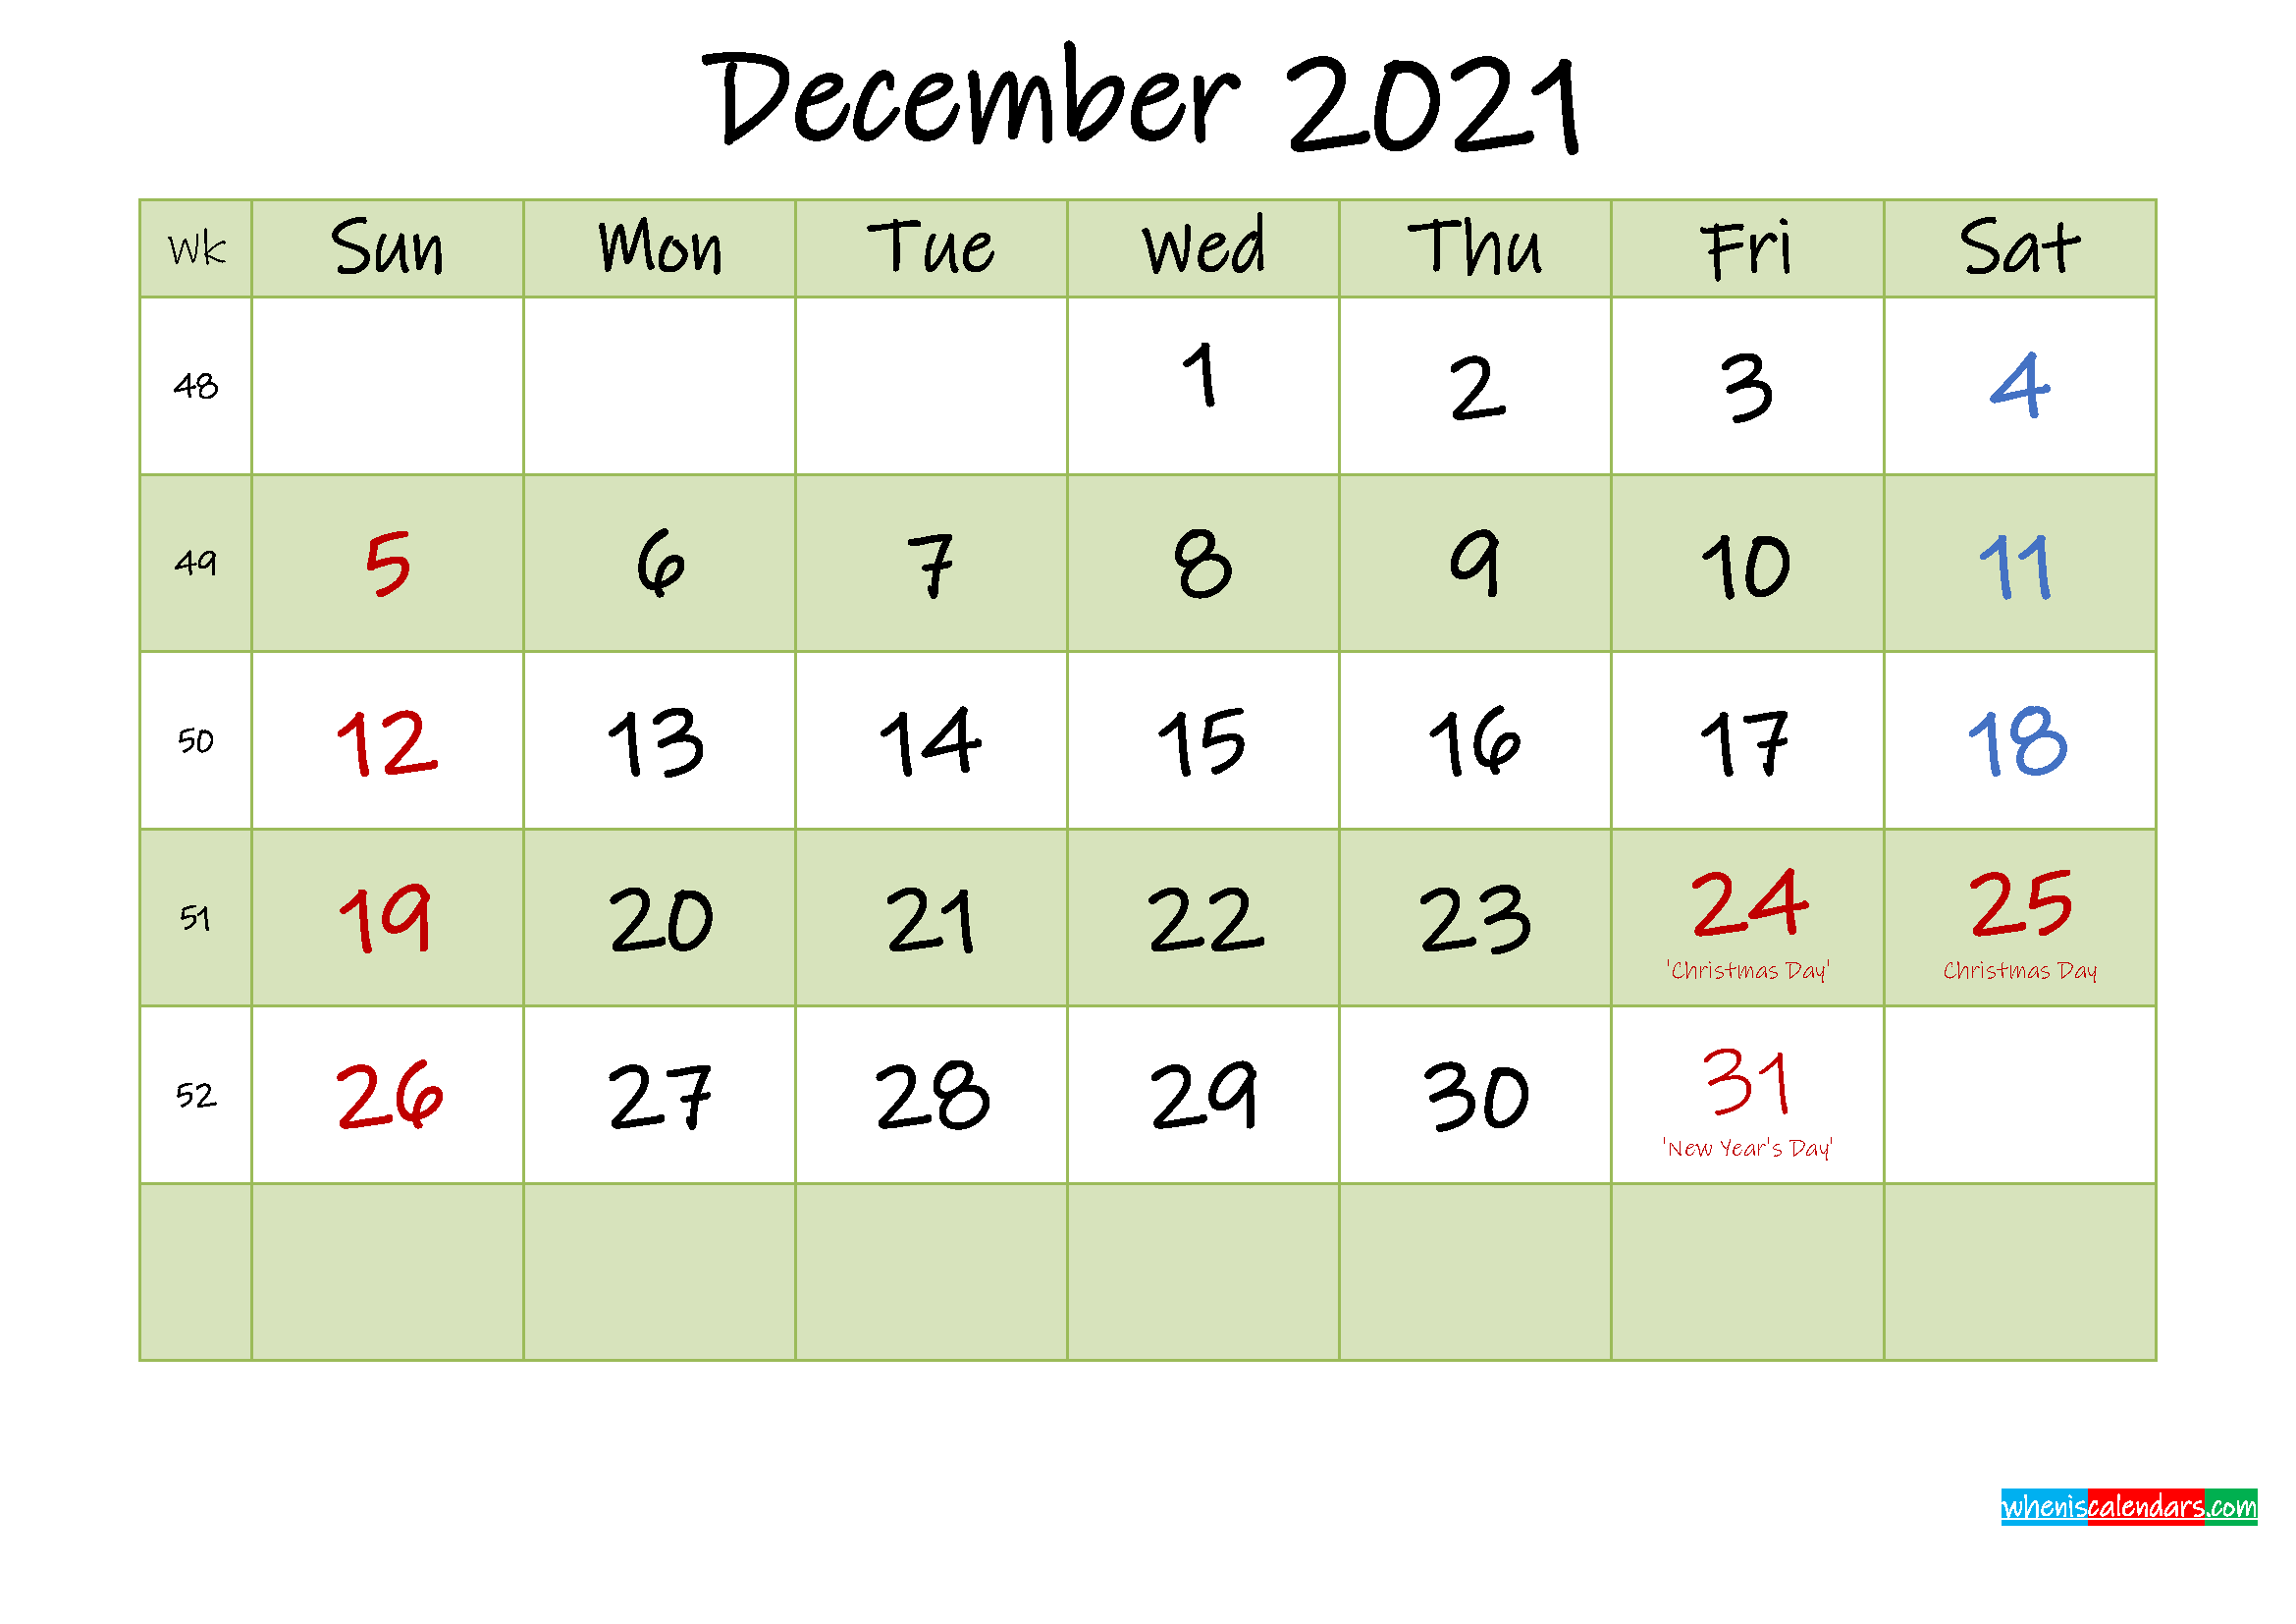 December 2021 Calendar with Holidays Printable